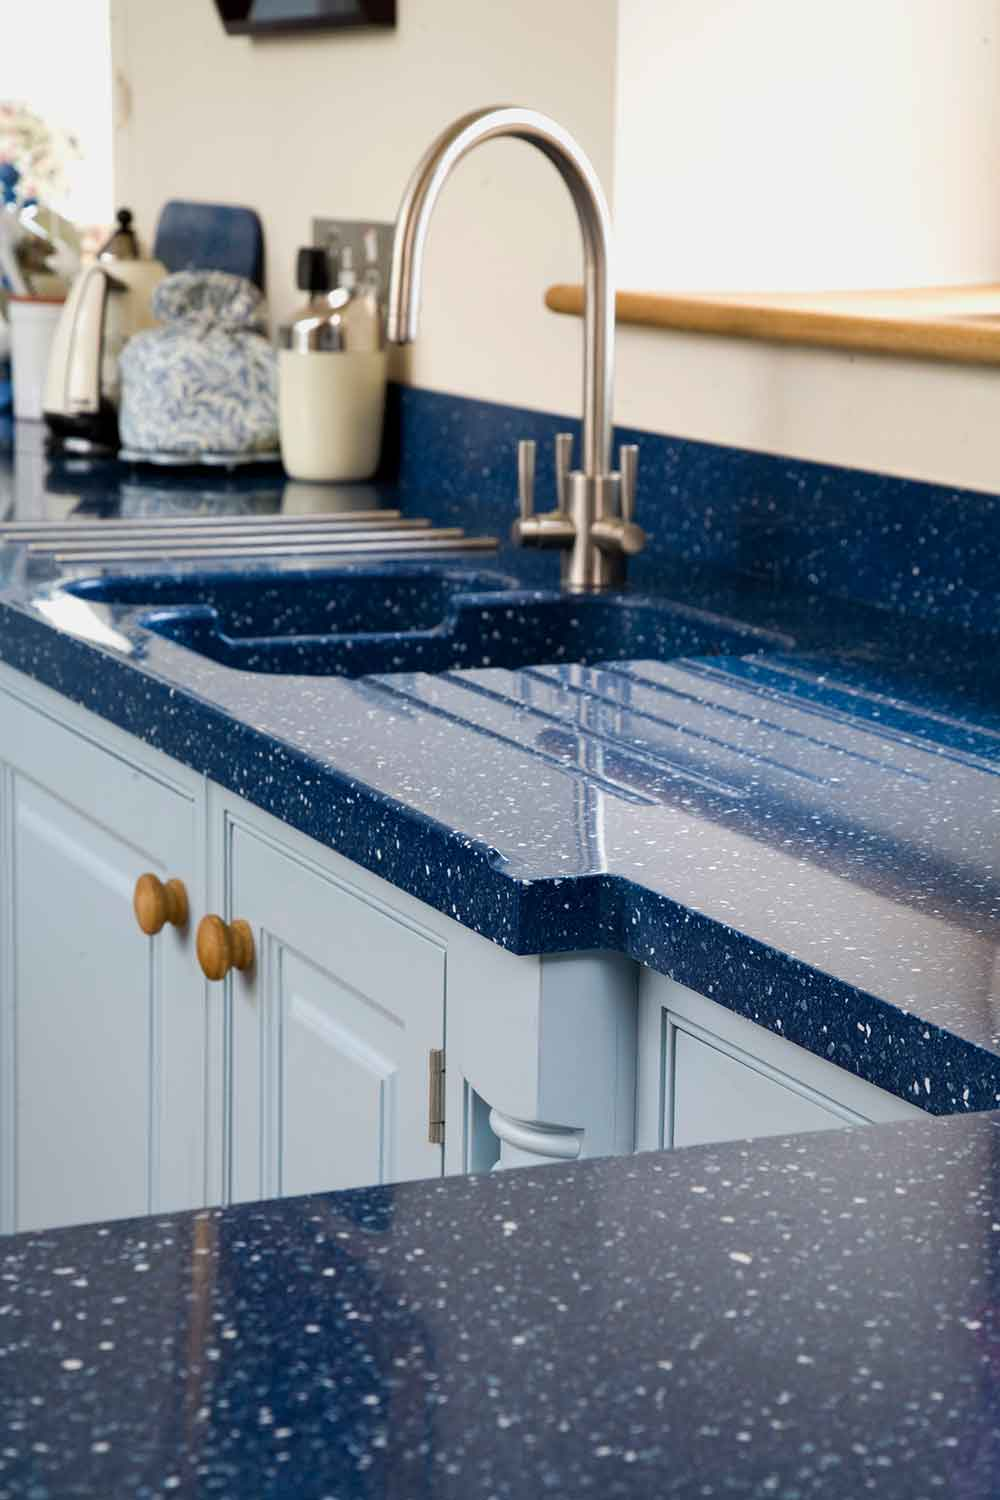 Close up of Blue Kitchen Surface Top with View of Sink and Tap